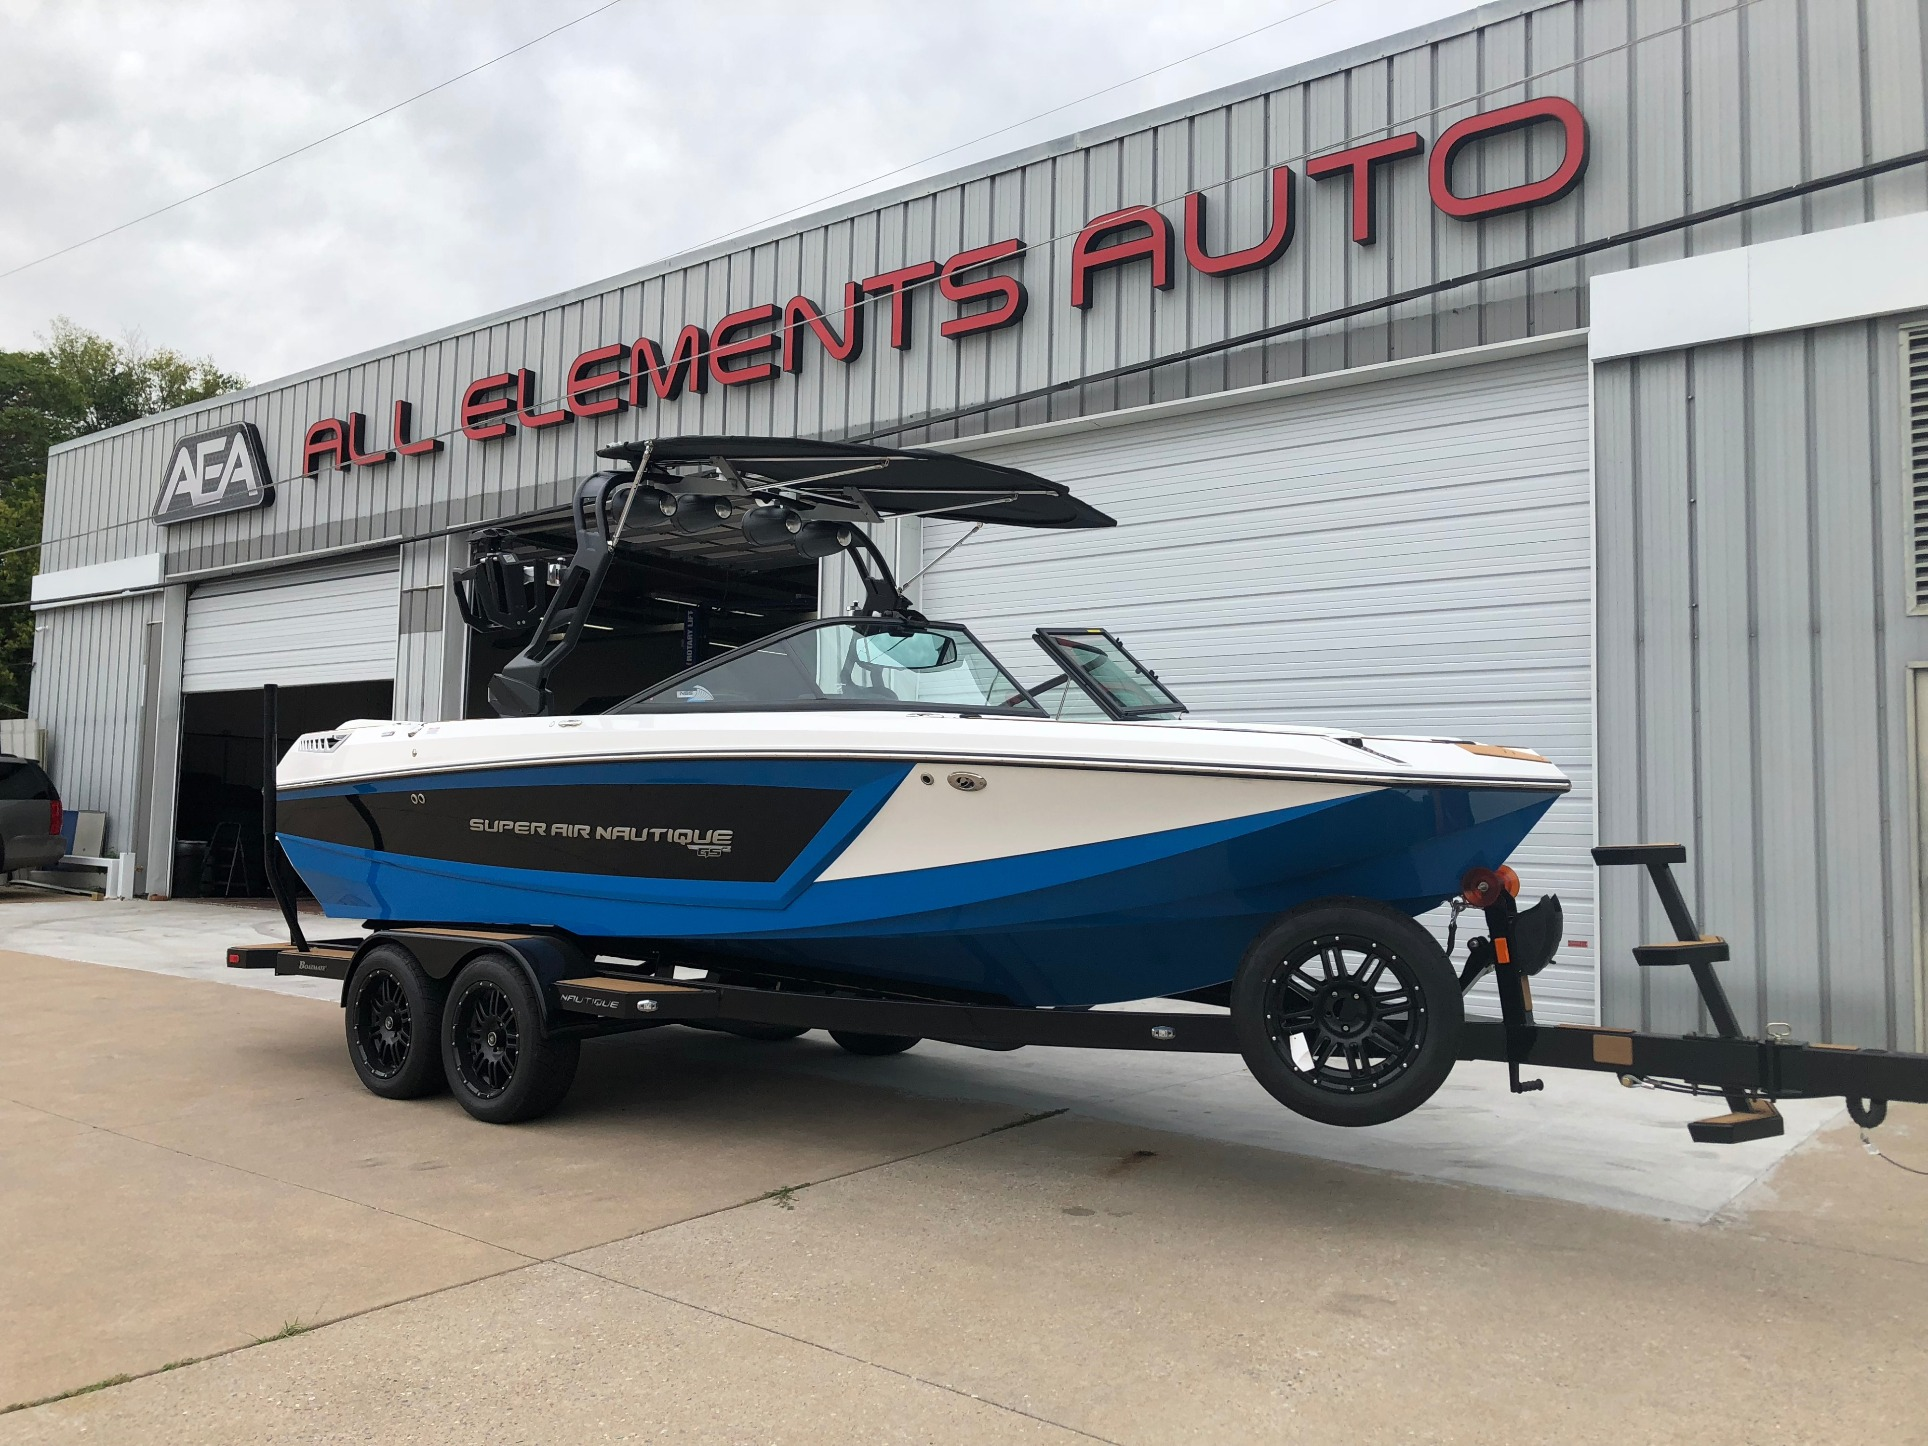 2019 Super Air Nautique GS22 for sale in Wichita, Kansas at All Elements Auto and Marine